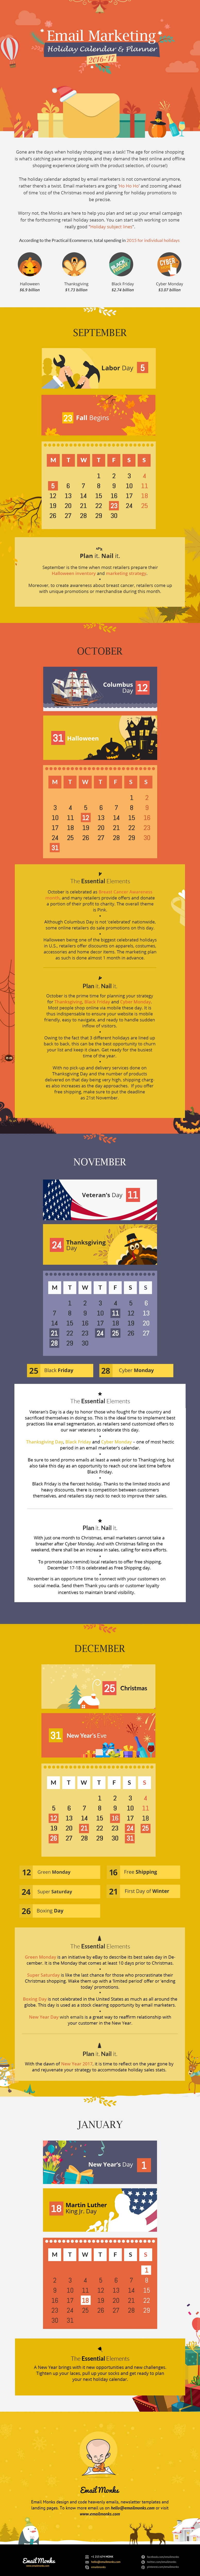 Email-Marketing-Holiday-Calendar-Infographic.jpg